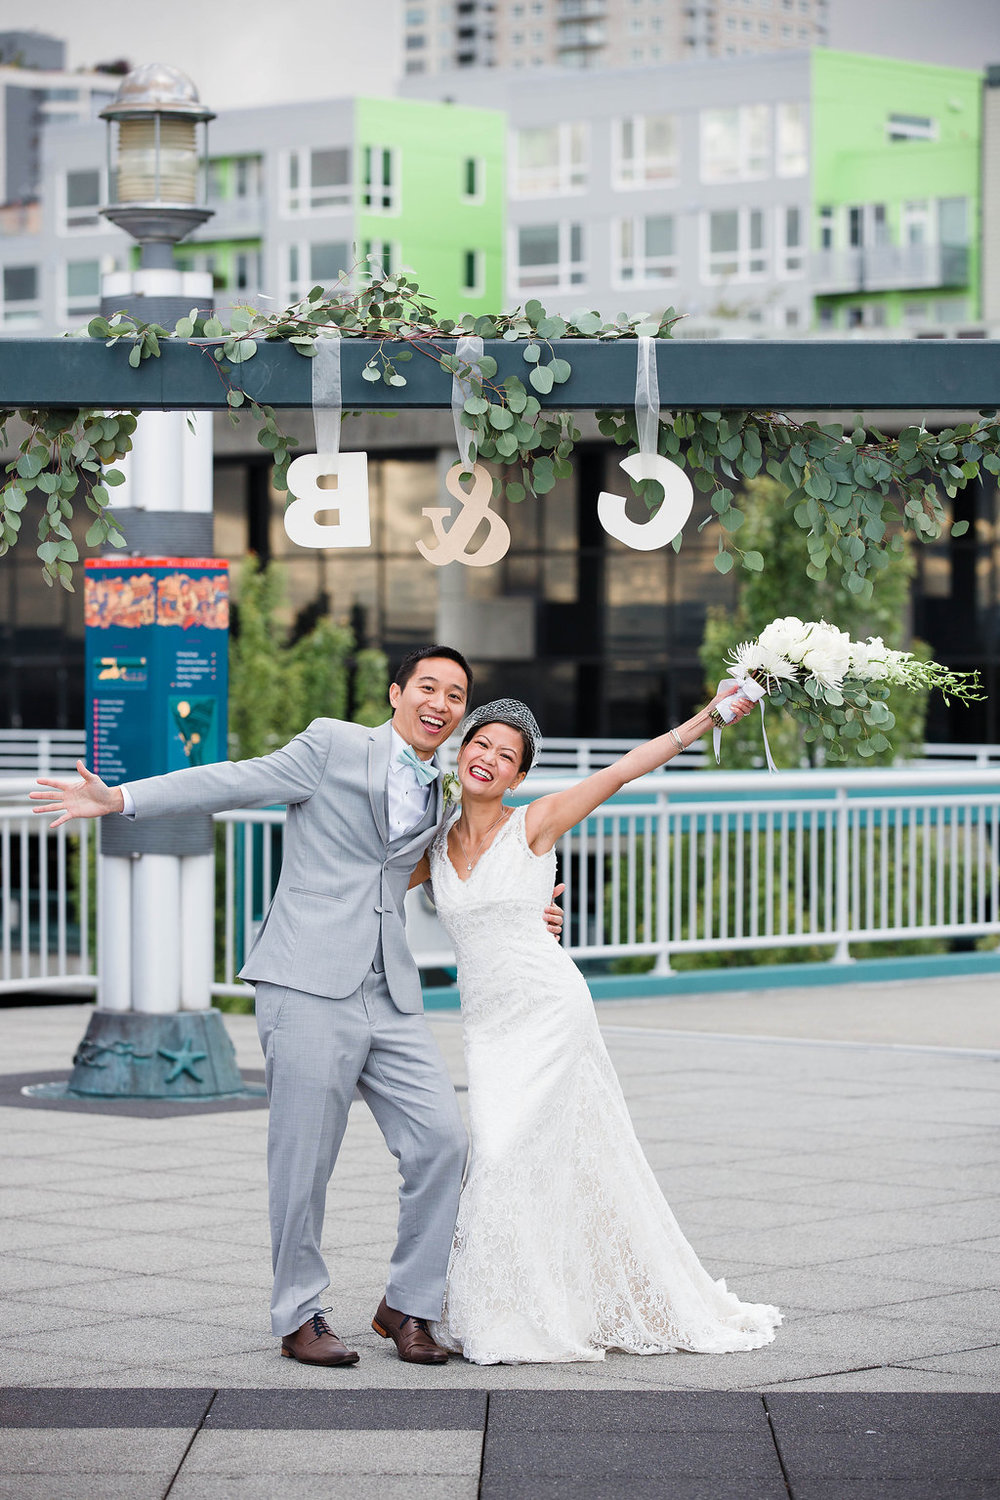 Bao_Uyen+Chris_Wedding_Seattle_Bell_Harbor_6182016_608.jpg